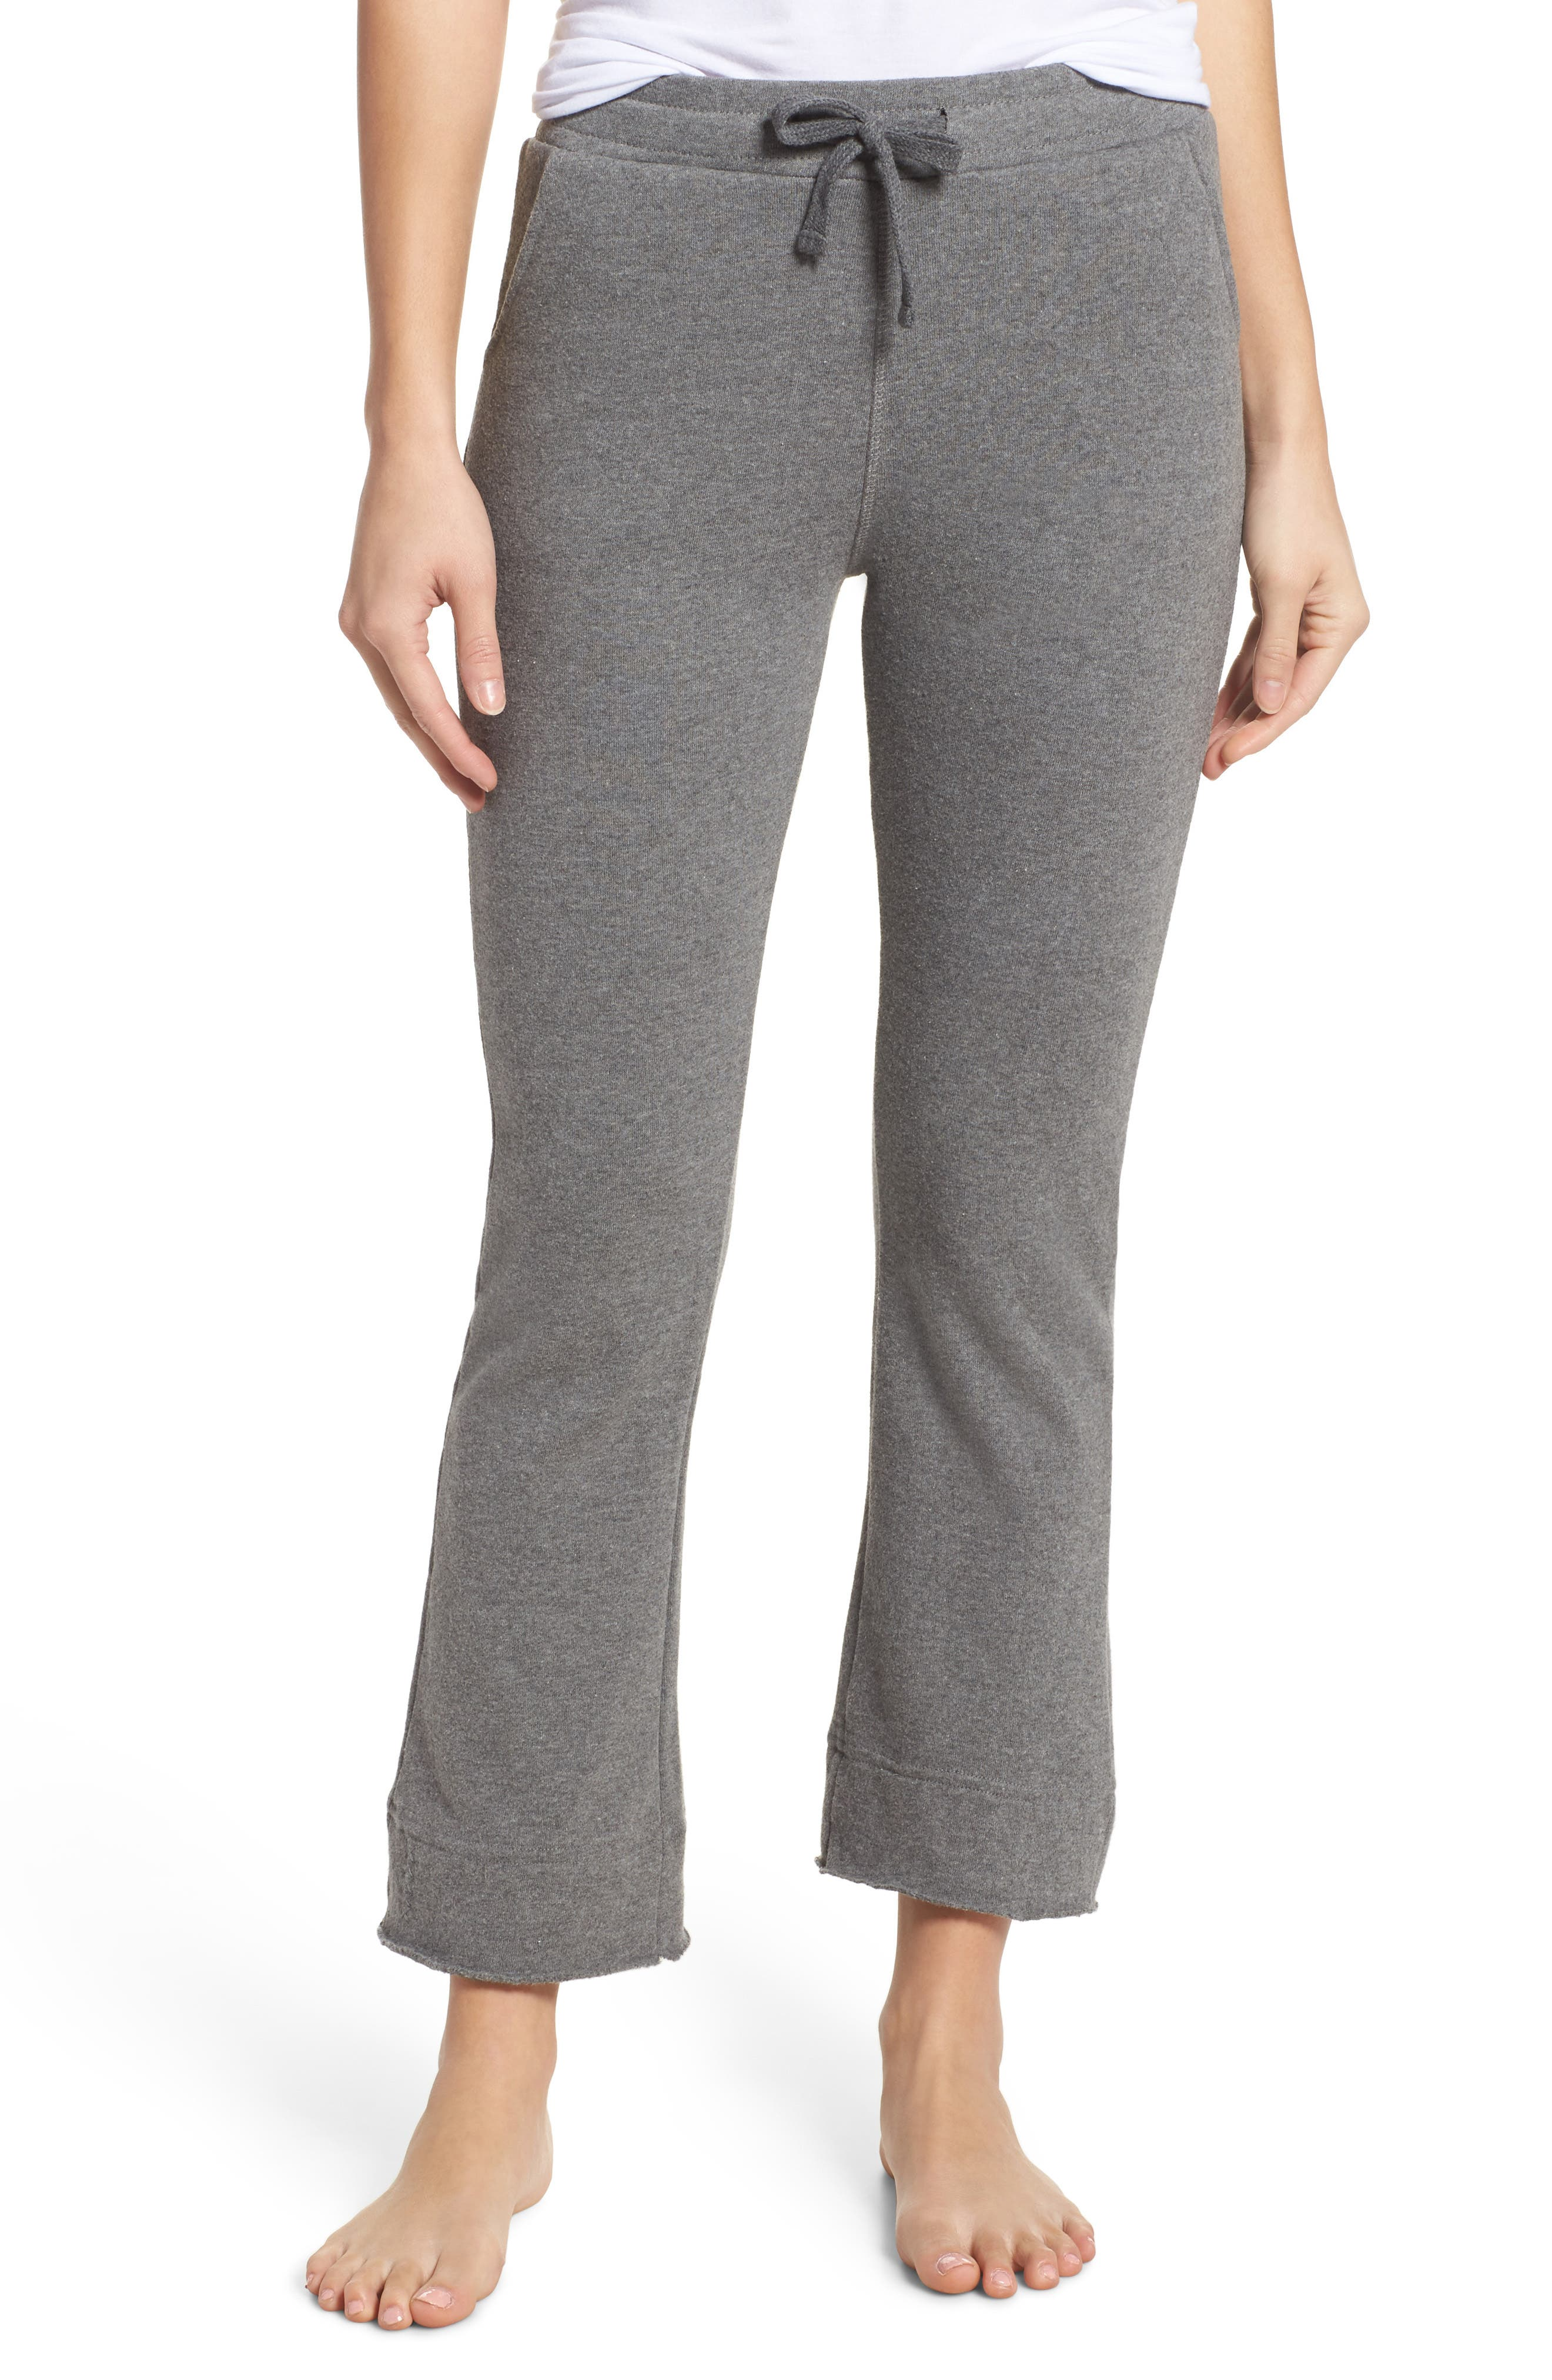 Alternate Image 1 Selected - Ragdoll Crop Flare Sweatpants